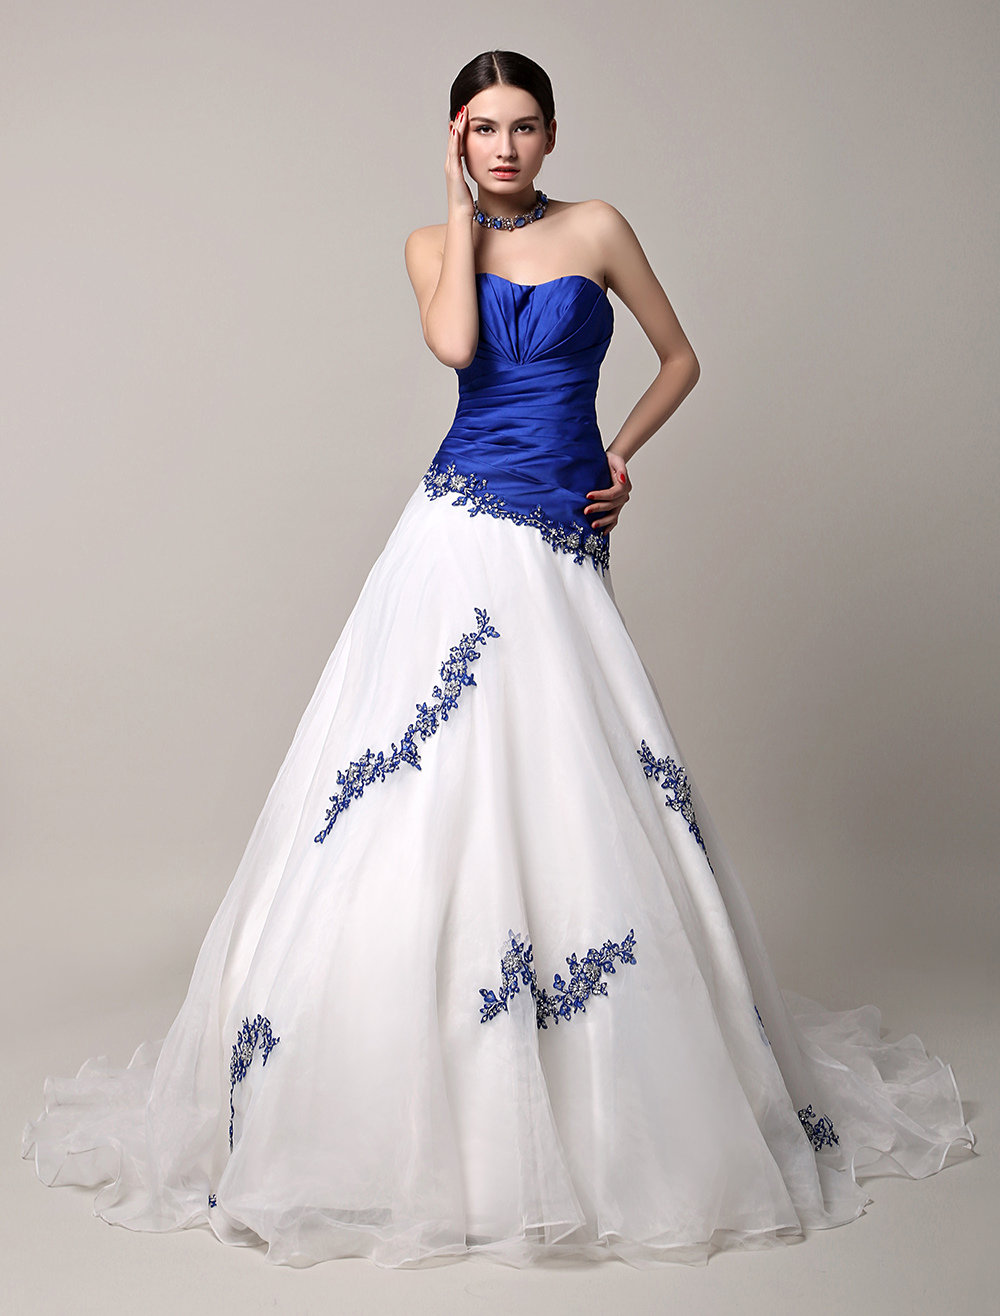 Blue Wedding Dress Lace Beading Sweetheart A-line Chapel Train Tulle Bridal Gown Backless Princess Dress Milanoo photo